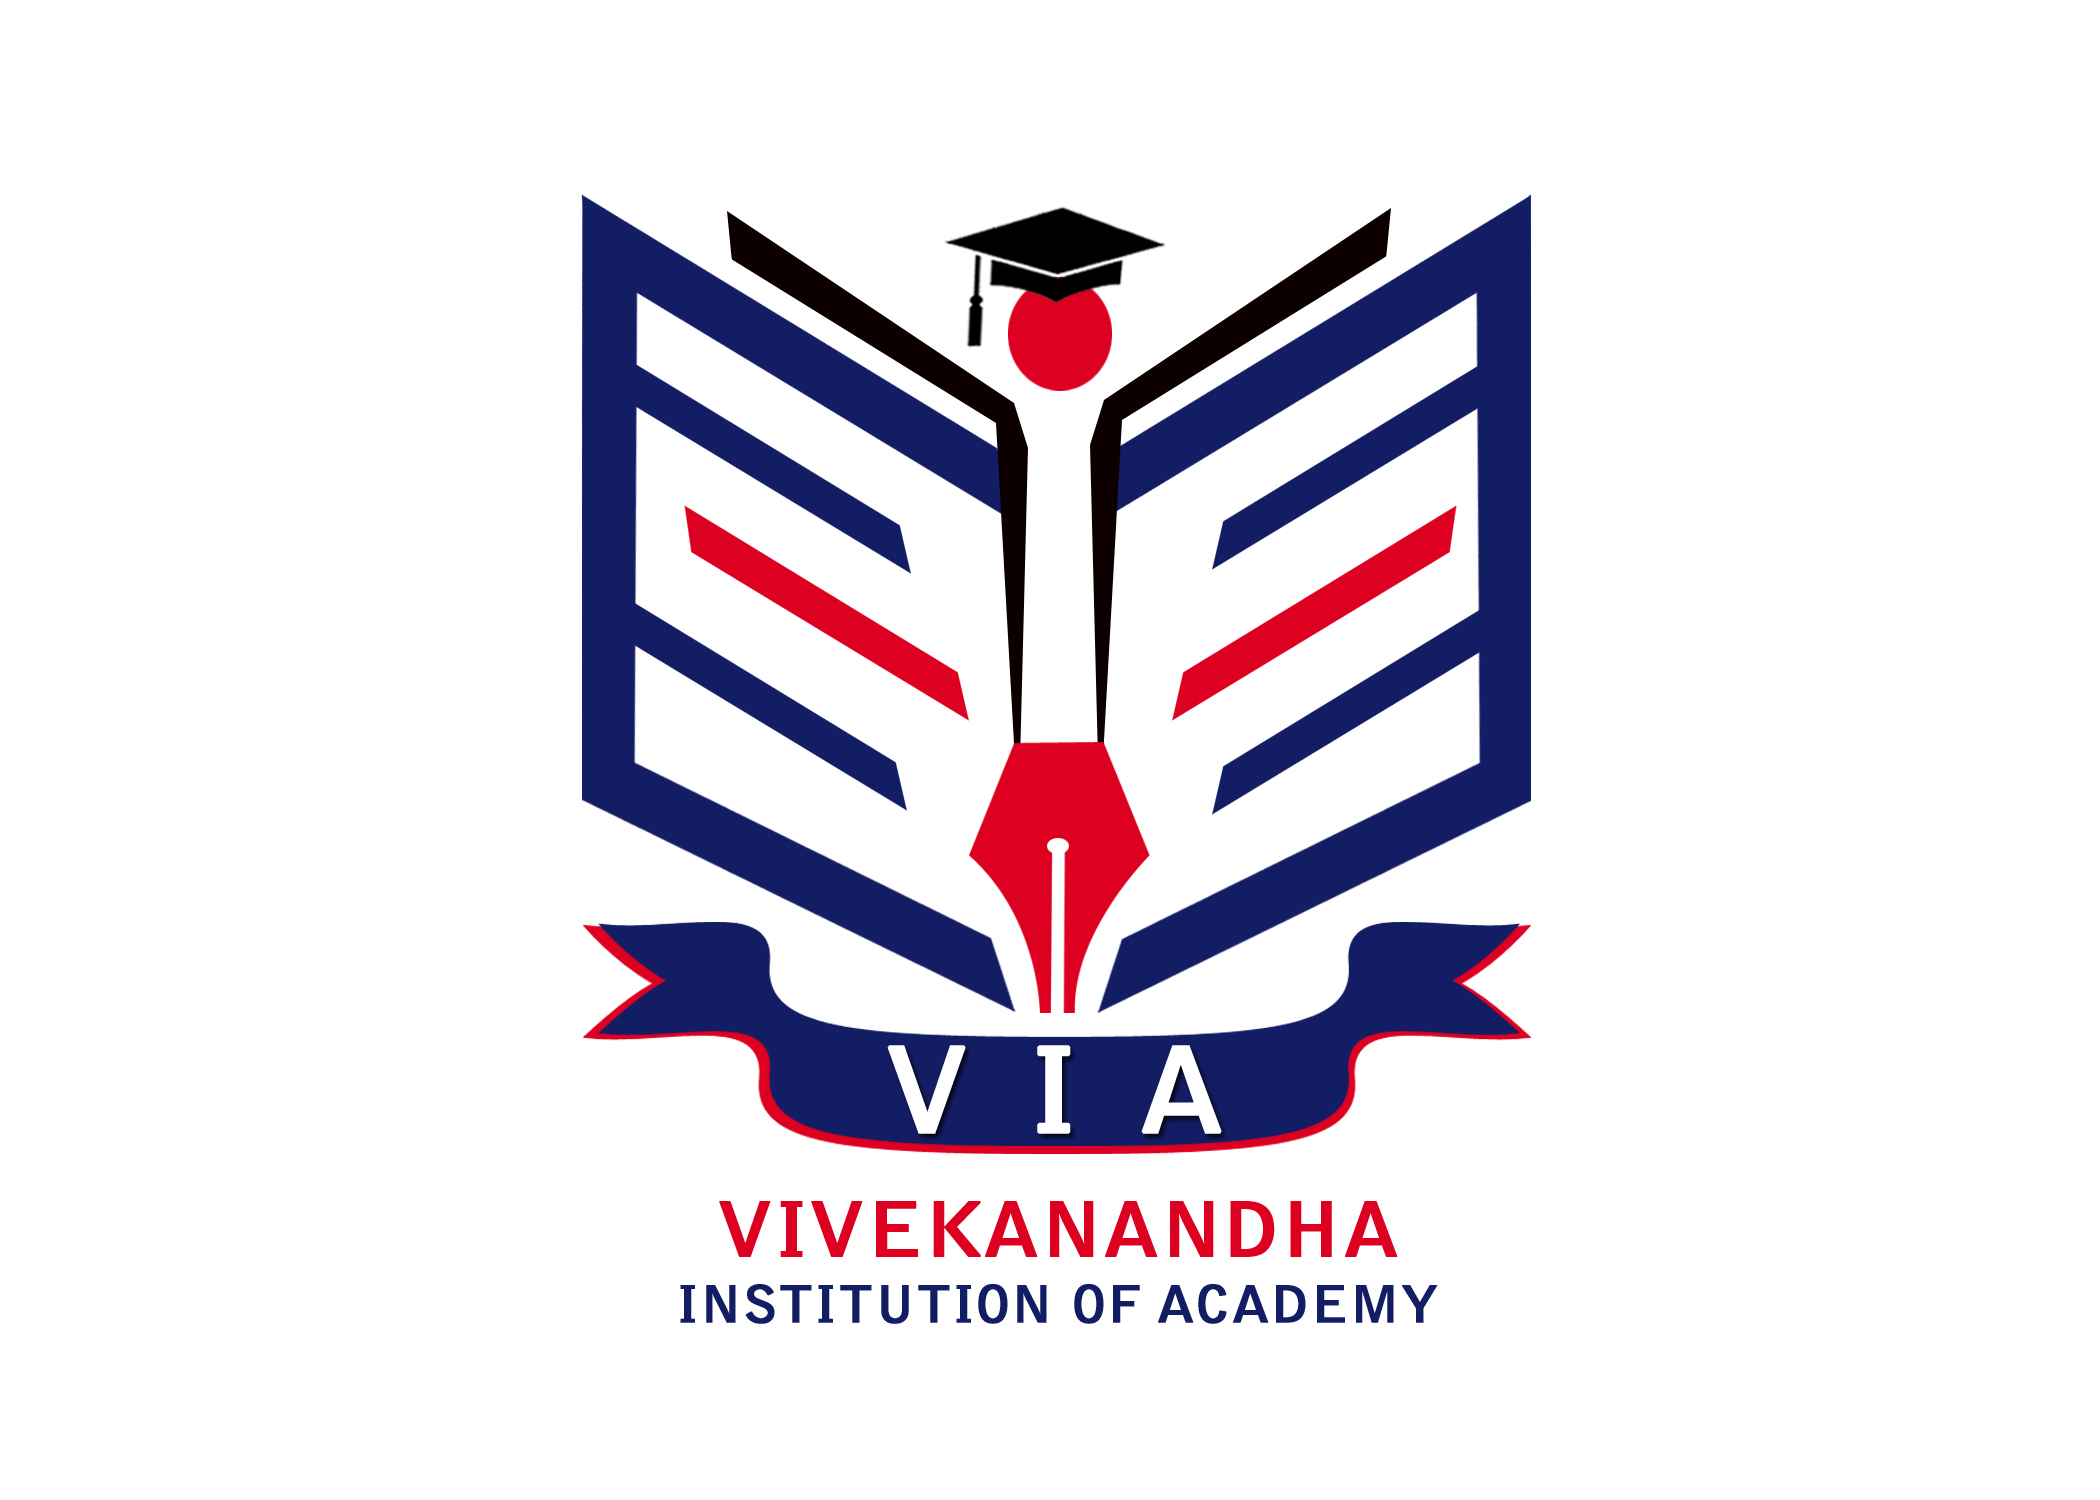 Vivekanandha Institution of Academy